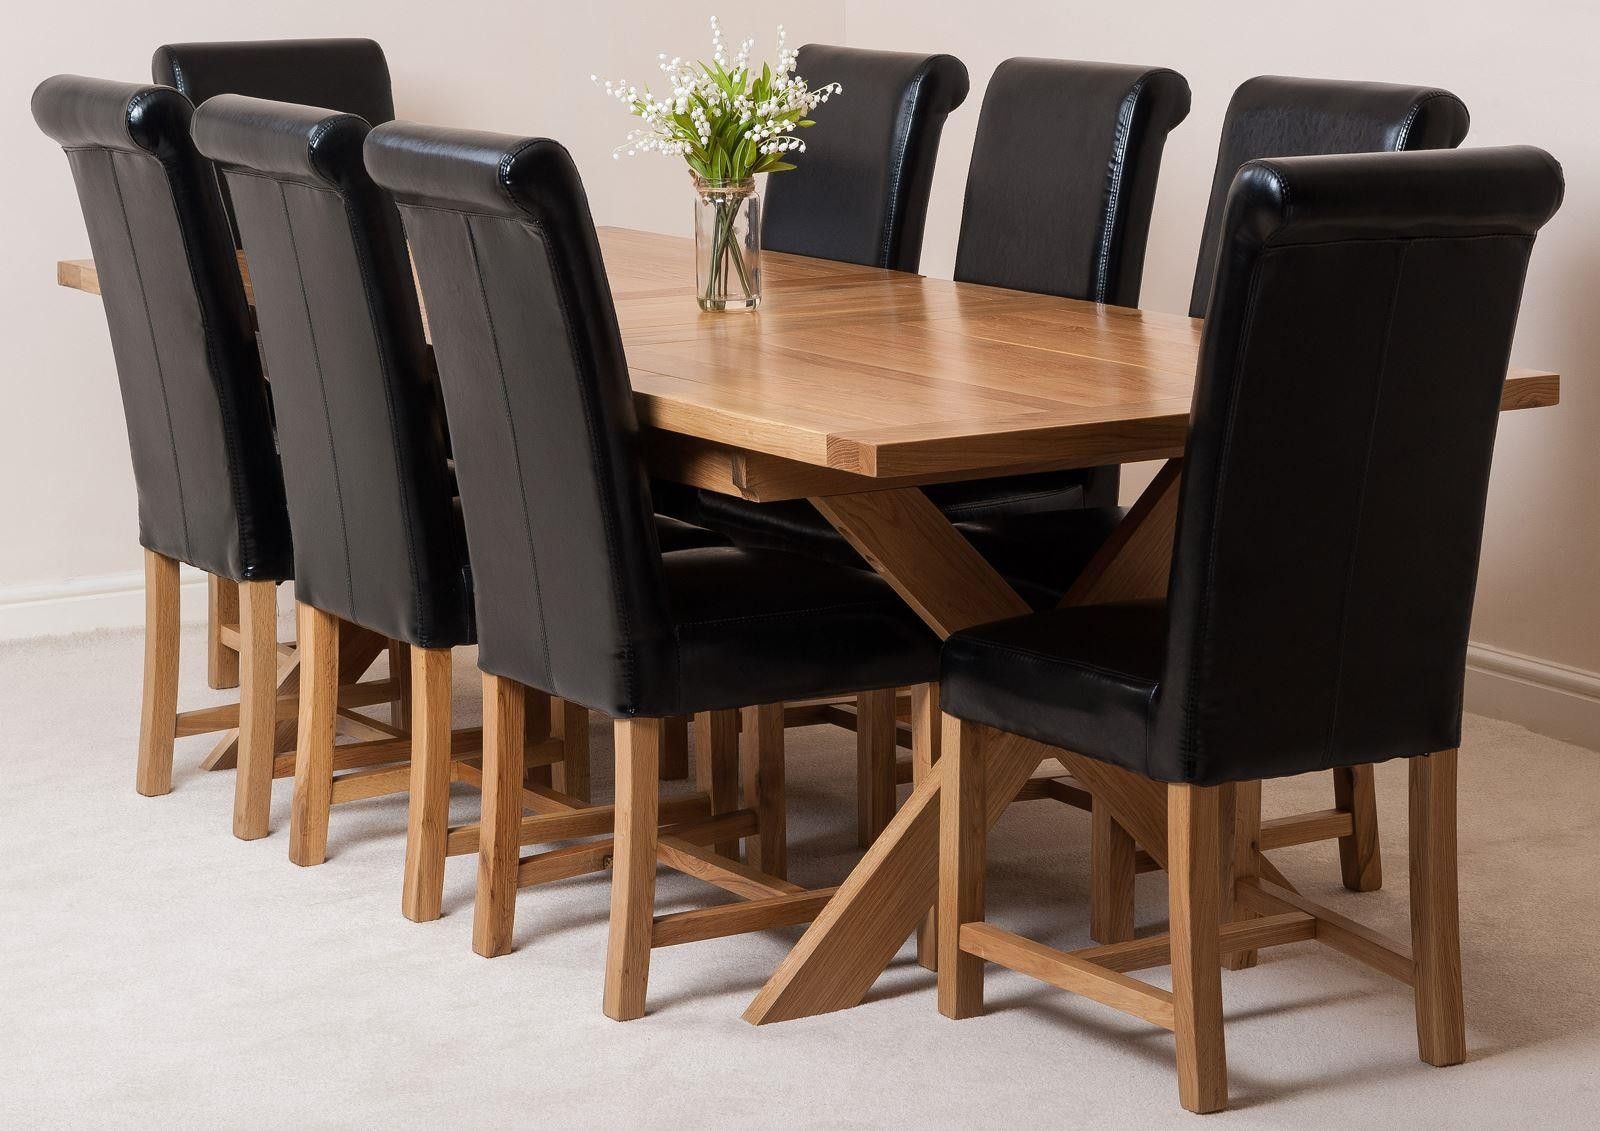 Vermont Solid Oak 200cm-240cm Crossed Leg Extending Dining Table with 8 Washington Dining Chairs [Black Leather]